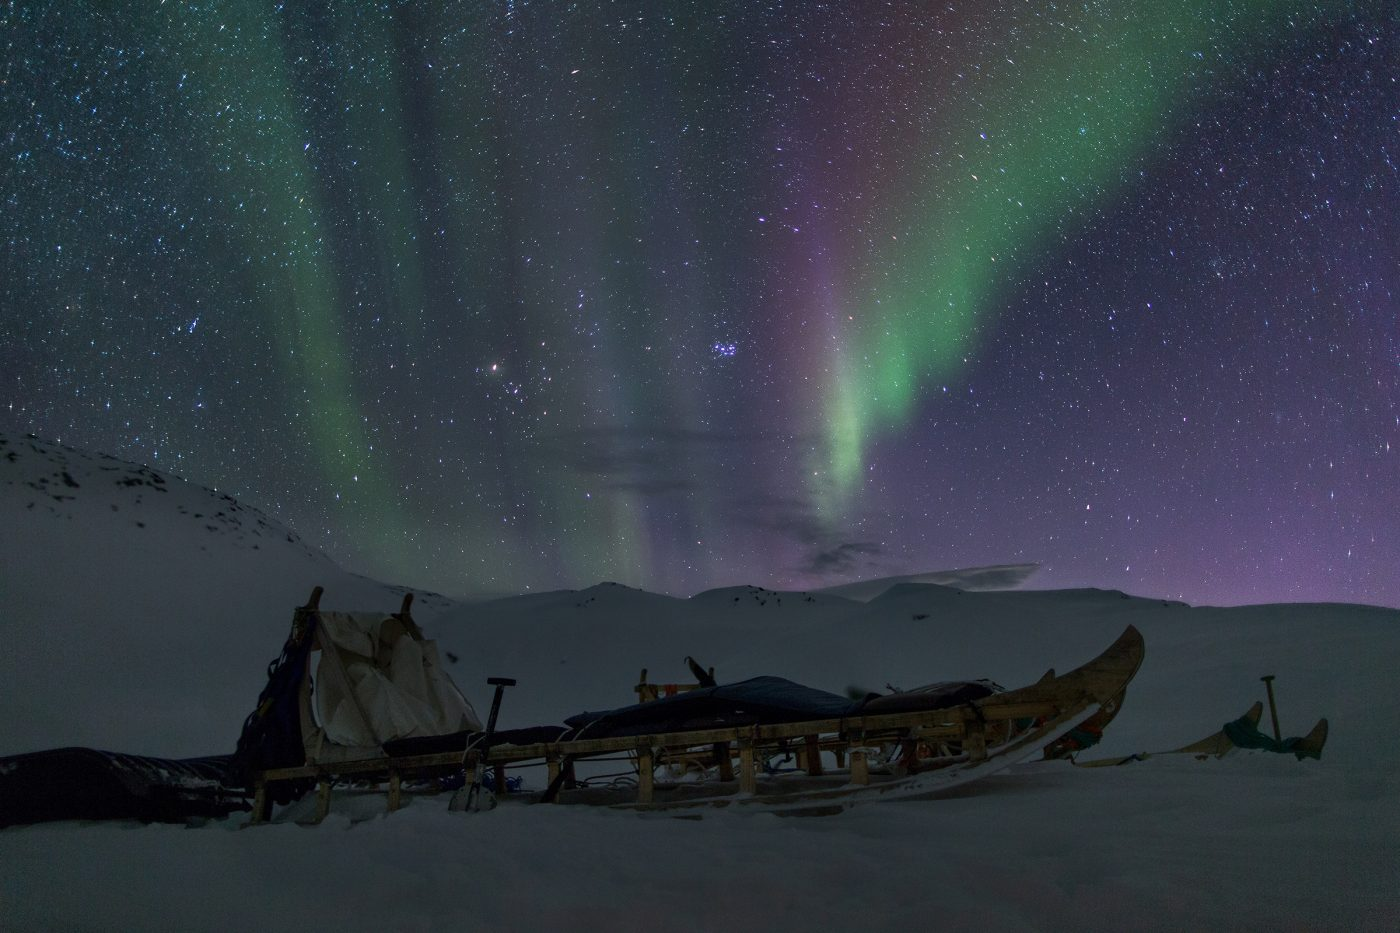 Northern Lights over a typical East Greenland dog sled near the Travellodge Greenland hut at Sermilik in Greenland. Photo by Mads Pihl.